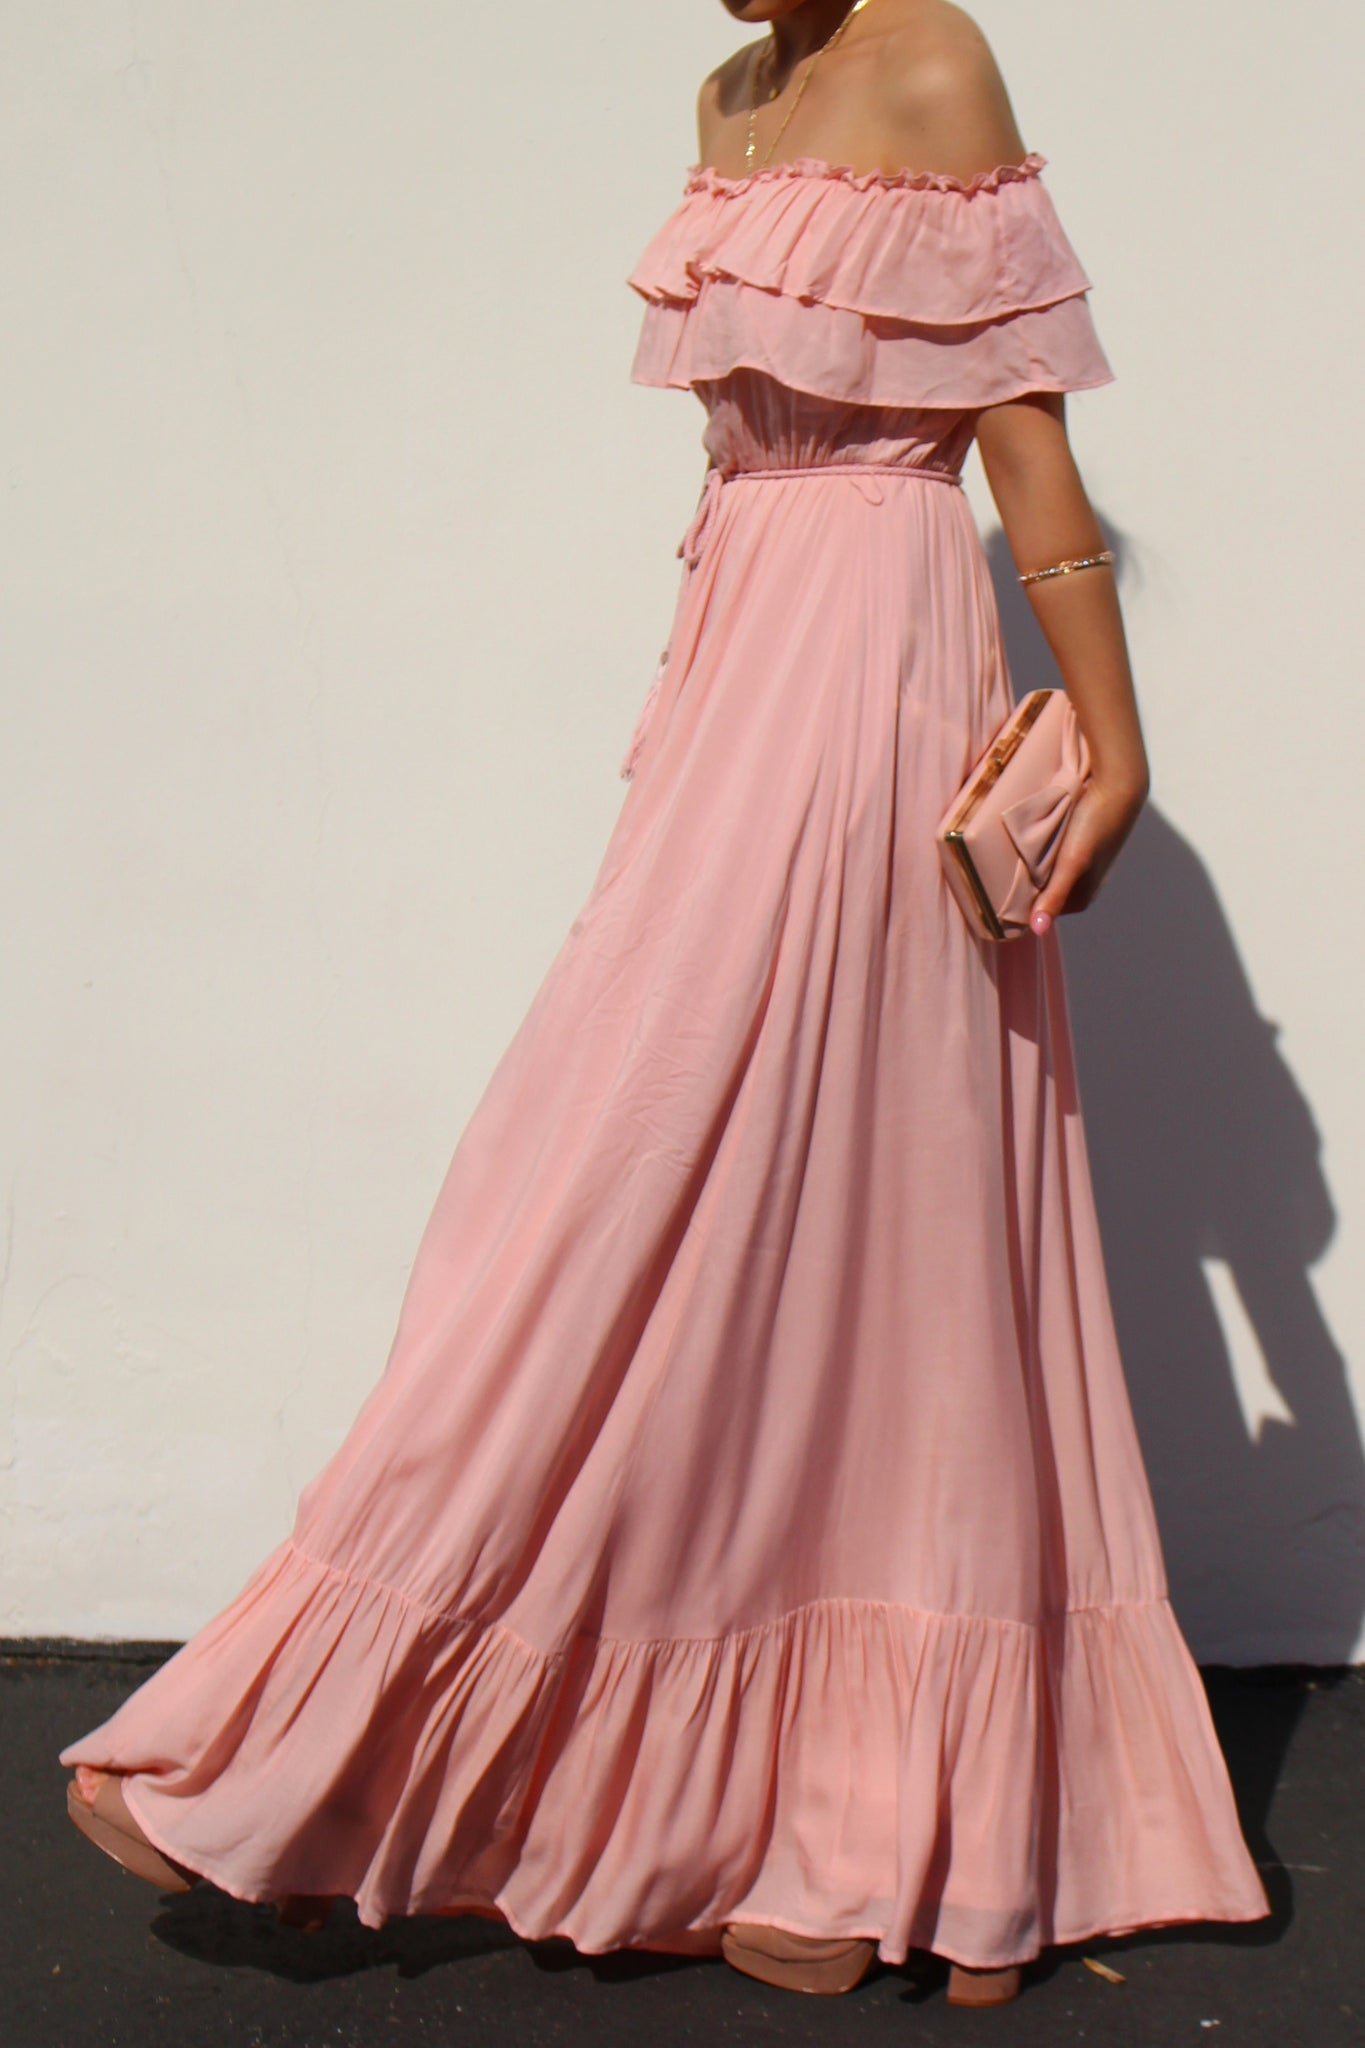 Don't Look Away Dress: Pink